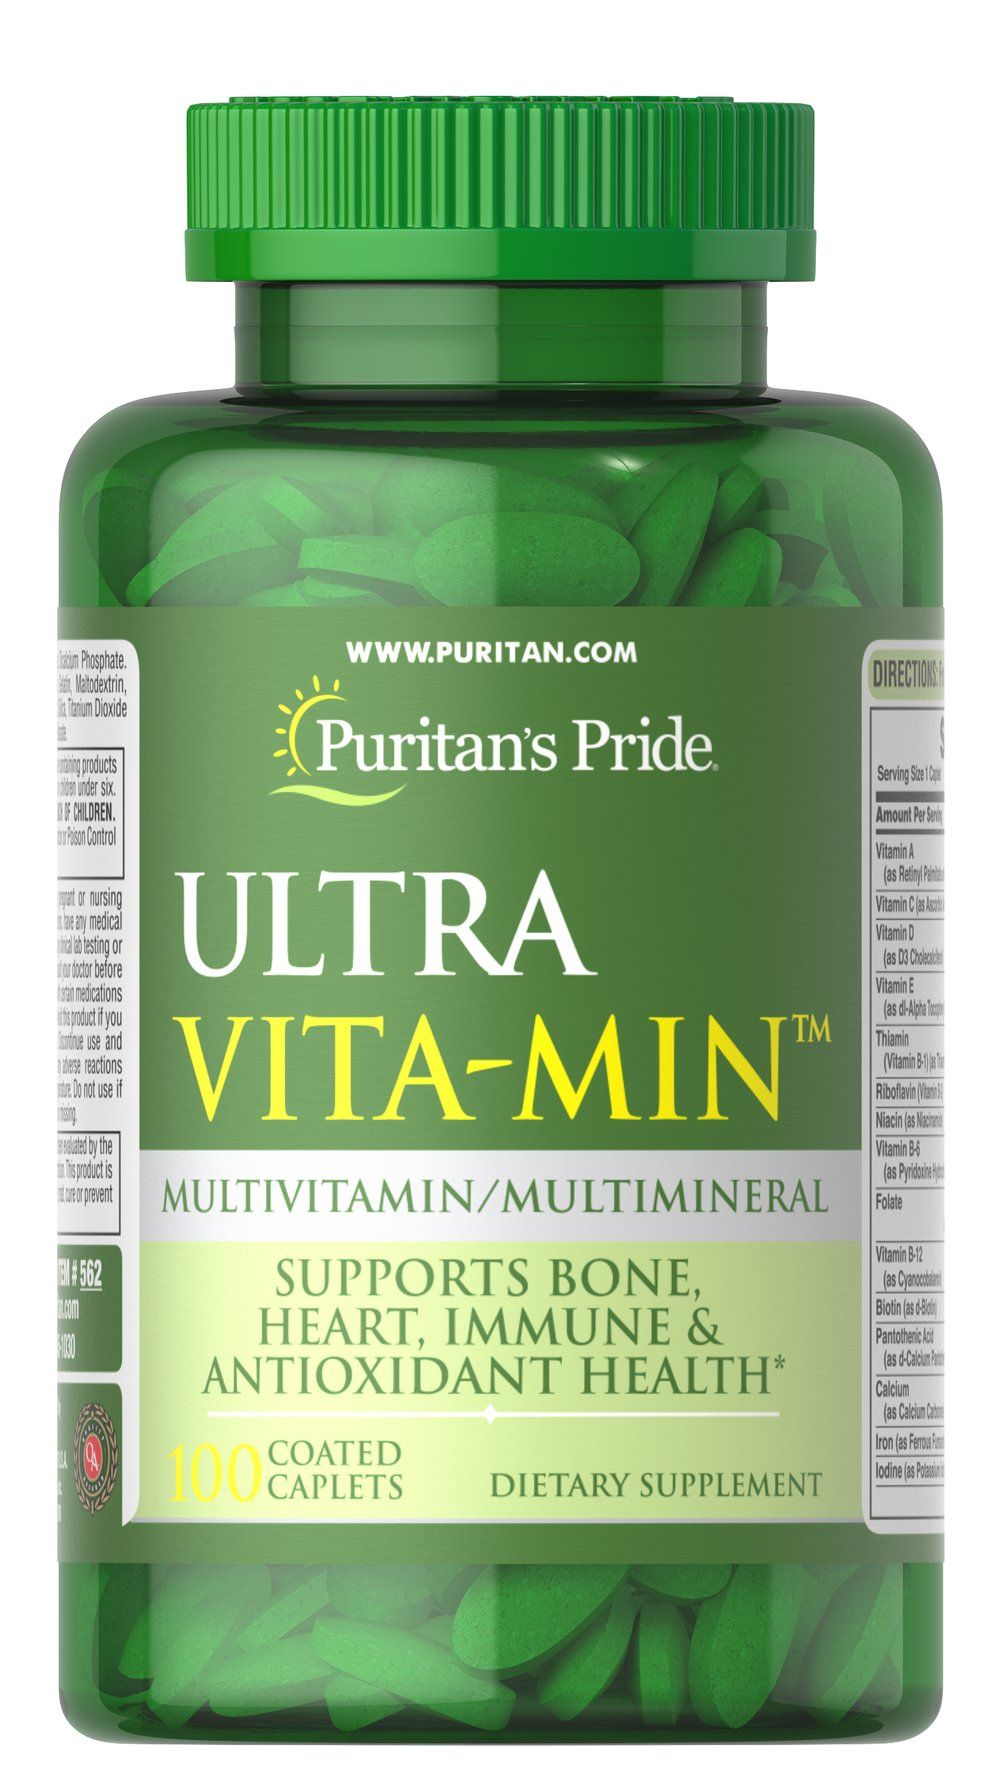 Ultra Vita-Min™ Multivitamin & Minerals VM-33 <p>A Super High Potency multivitamin ideal for men and women.  ULTRA VITA-MIN is a rich cornucopia of over 35 ingredients that help in areas of bone maintenance, energy metabolism, immune system support, and antioxidant health.**</p> 100 Caplets  $16.49